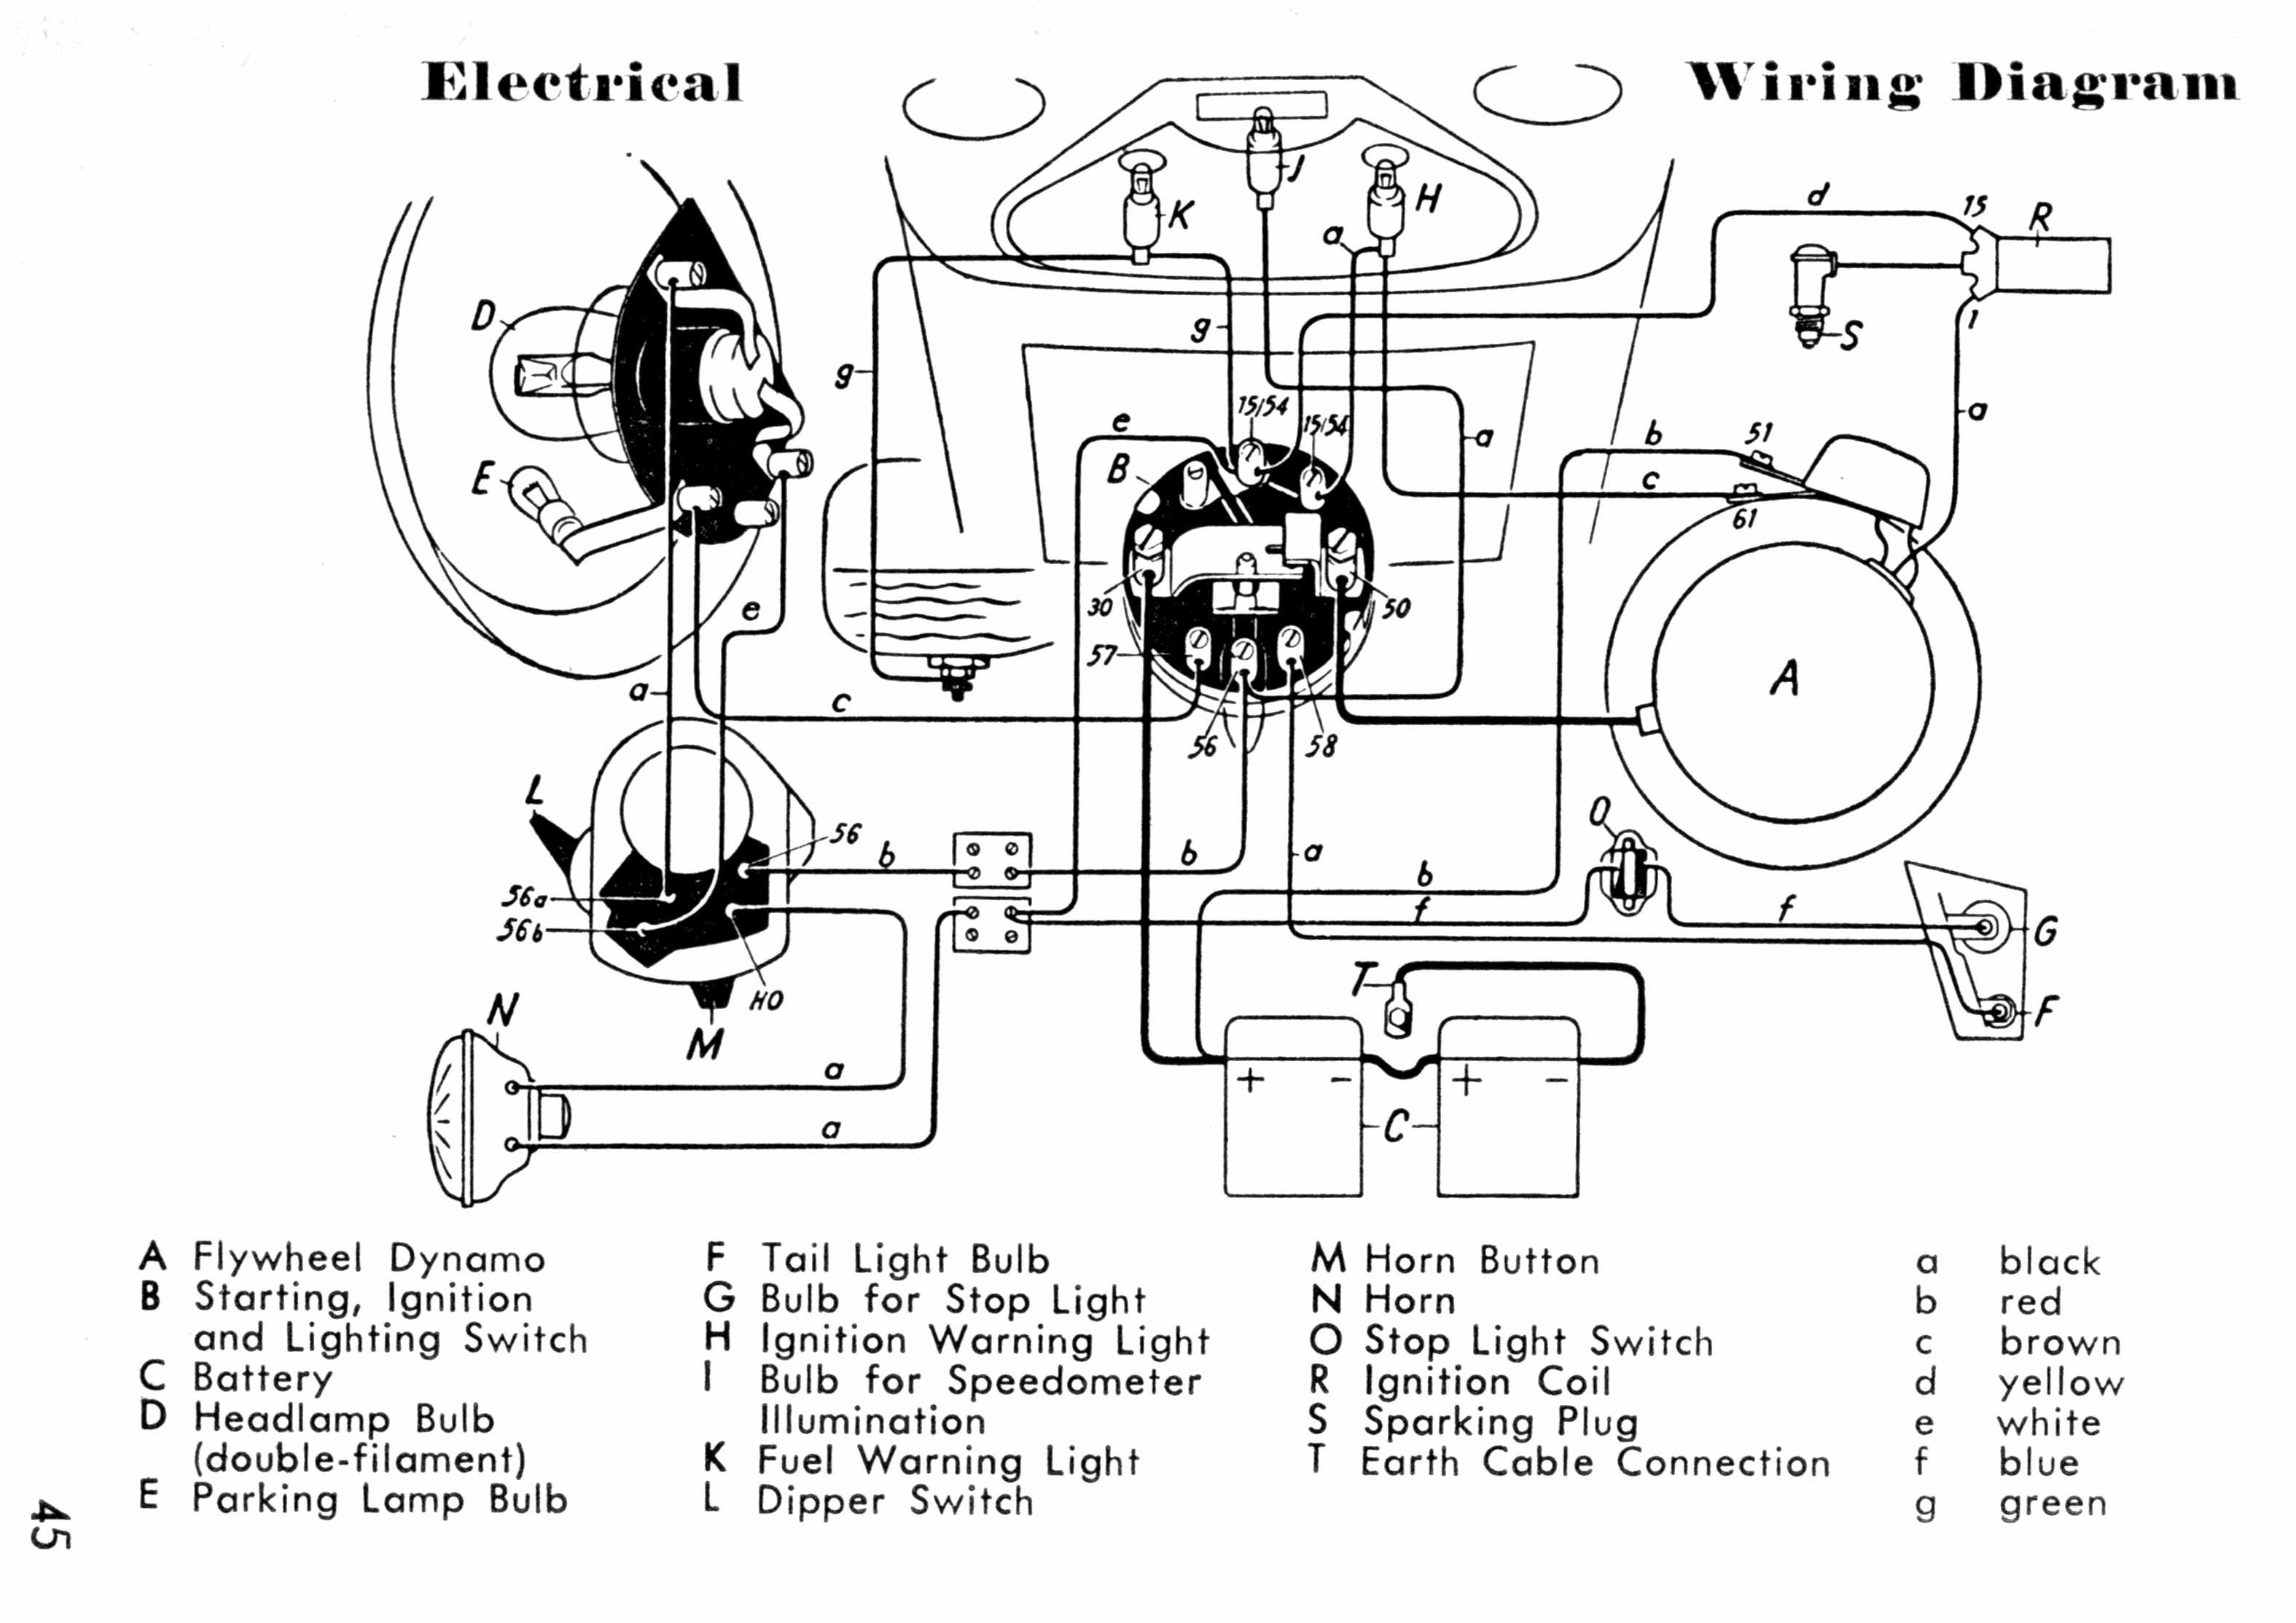 schematic electric scooter wiring diagram closet pinterest rh pinterest com boreem scooter wiring diagram boreem electric scooter wiring diagram